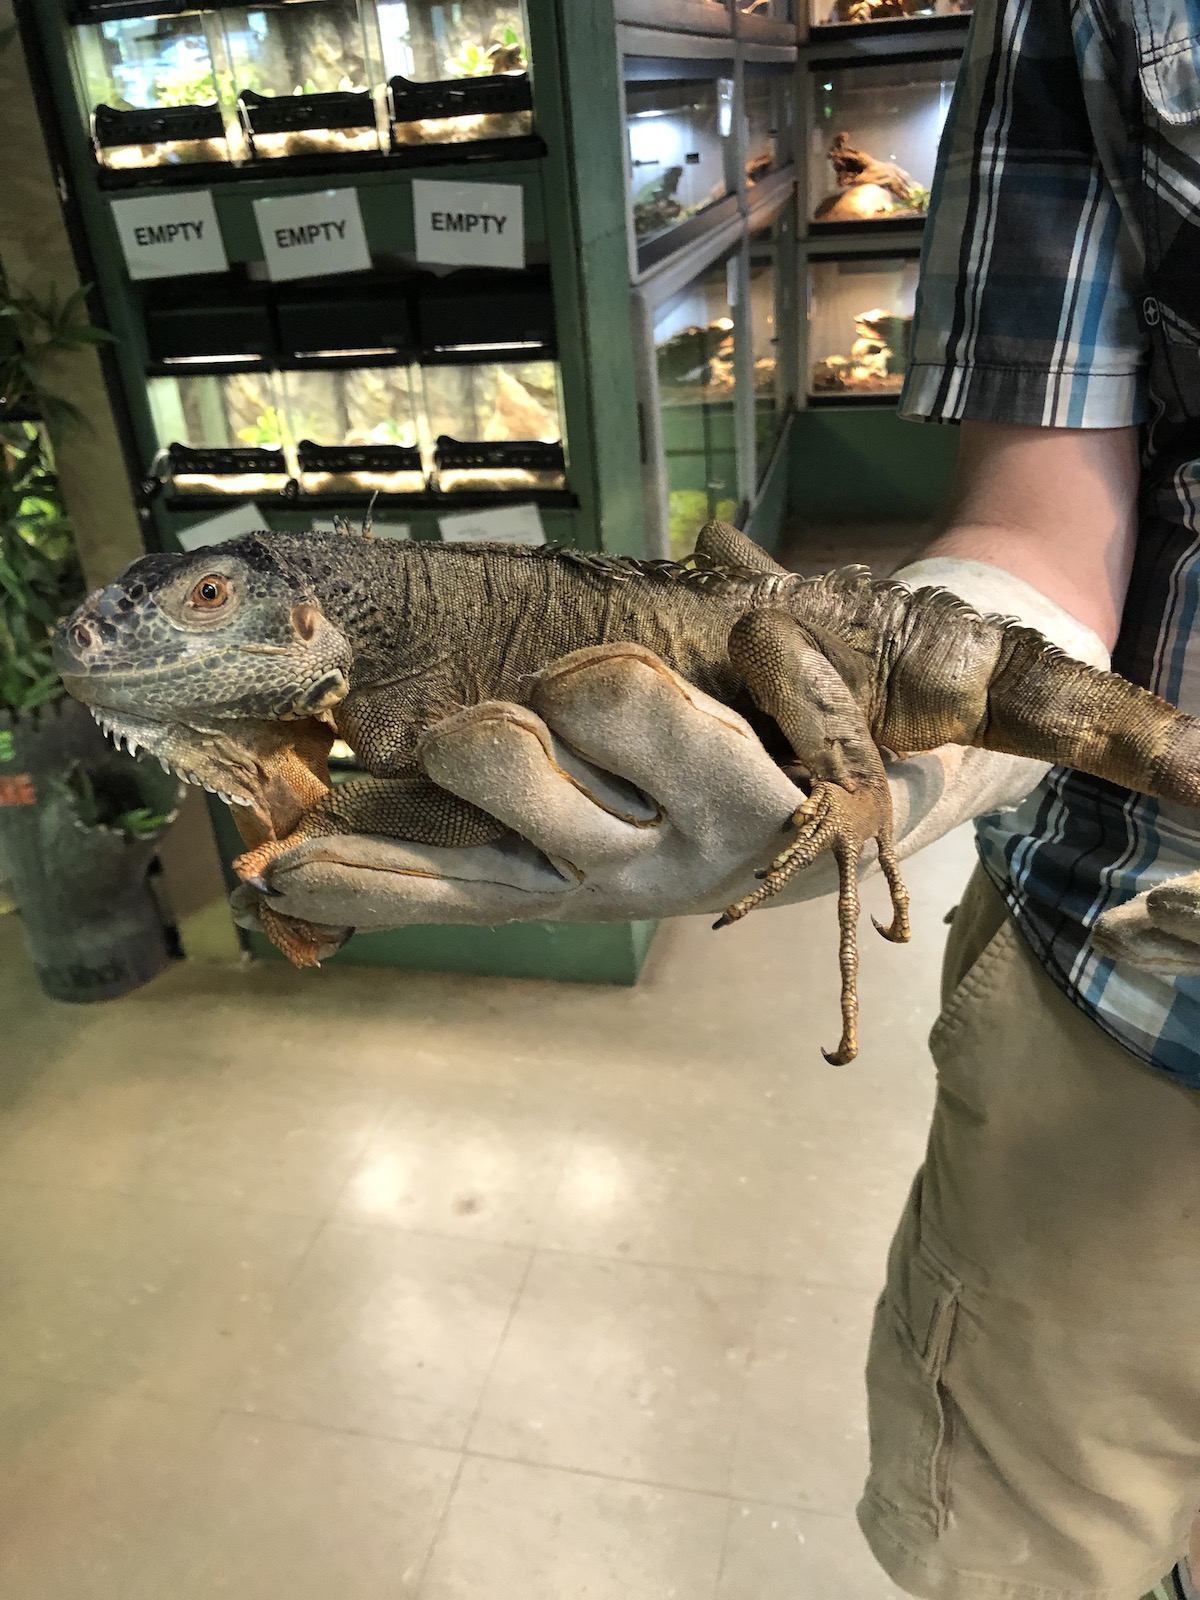 ALREADY ADOPTED - RESCUE - IGUANA